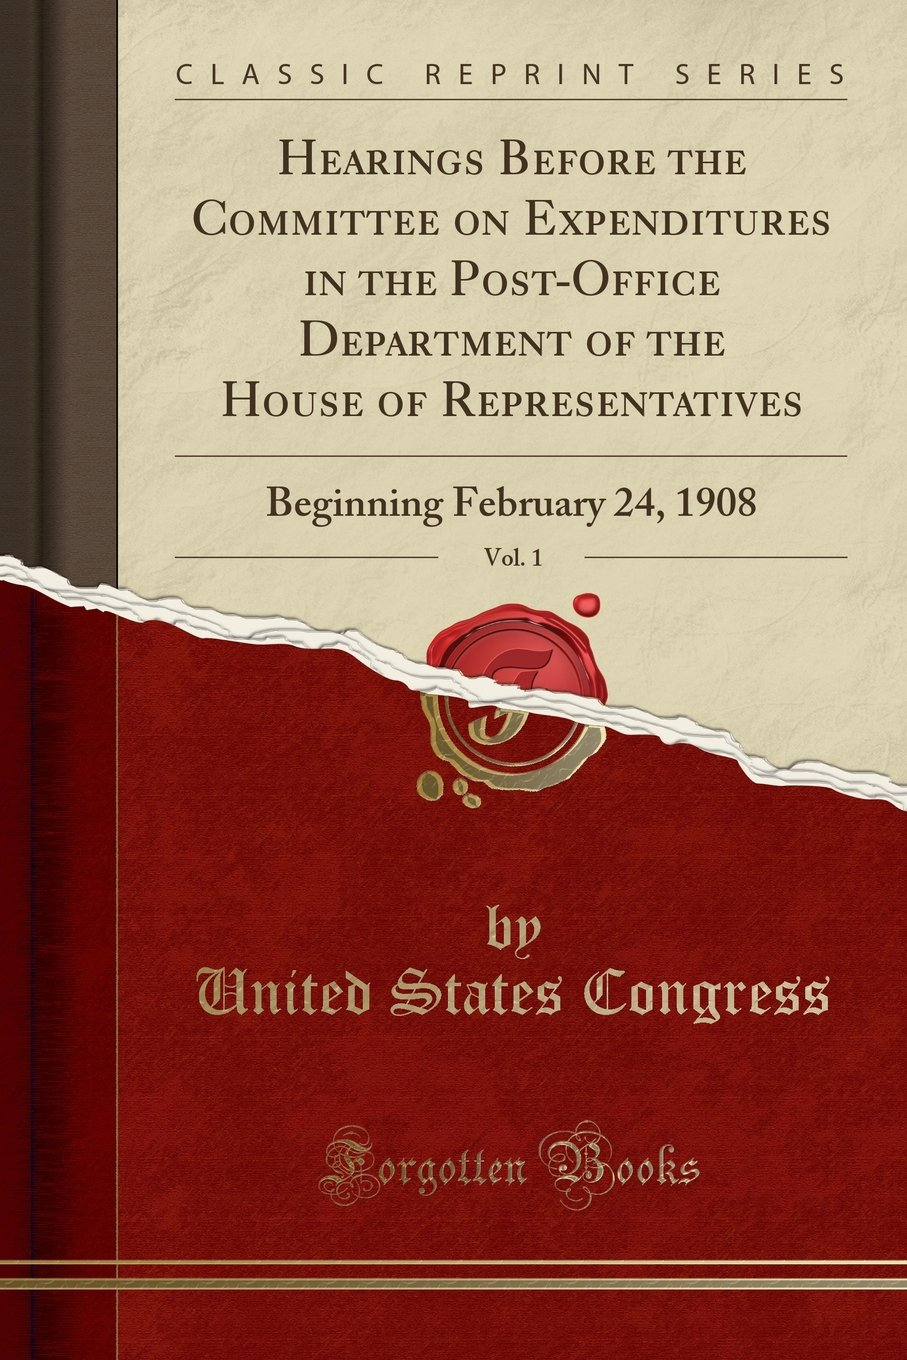 Read Online Hearings Before the Committee on Expenditures in the Post-Office Department of the House of Representatives, Vol. 1: Beginning February 24, 1908 (Classic Reprint) PDF